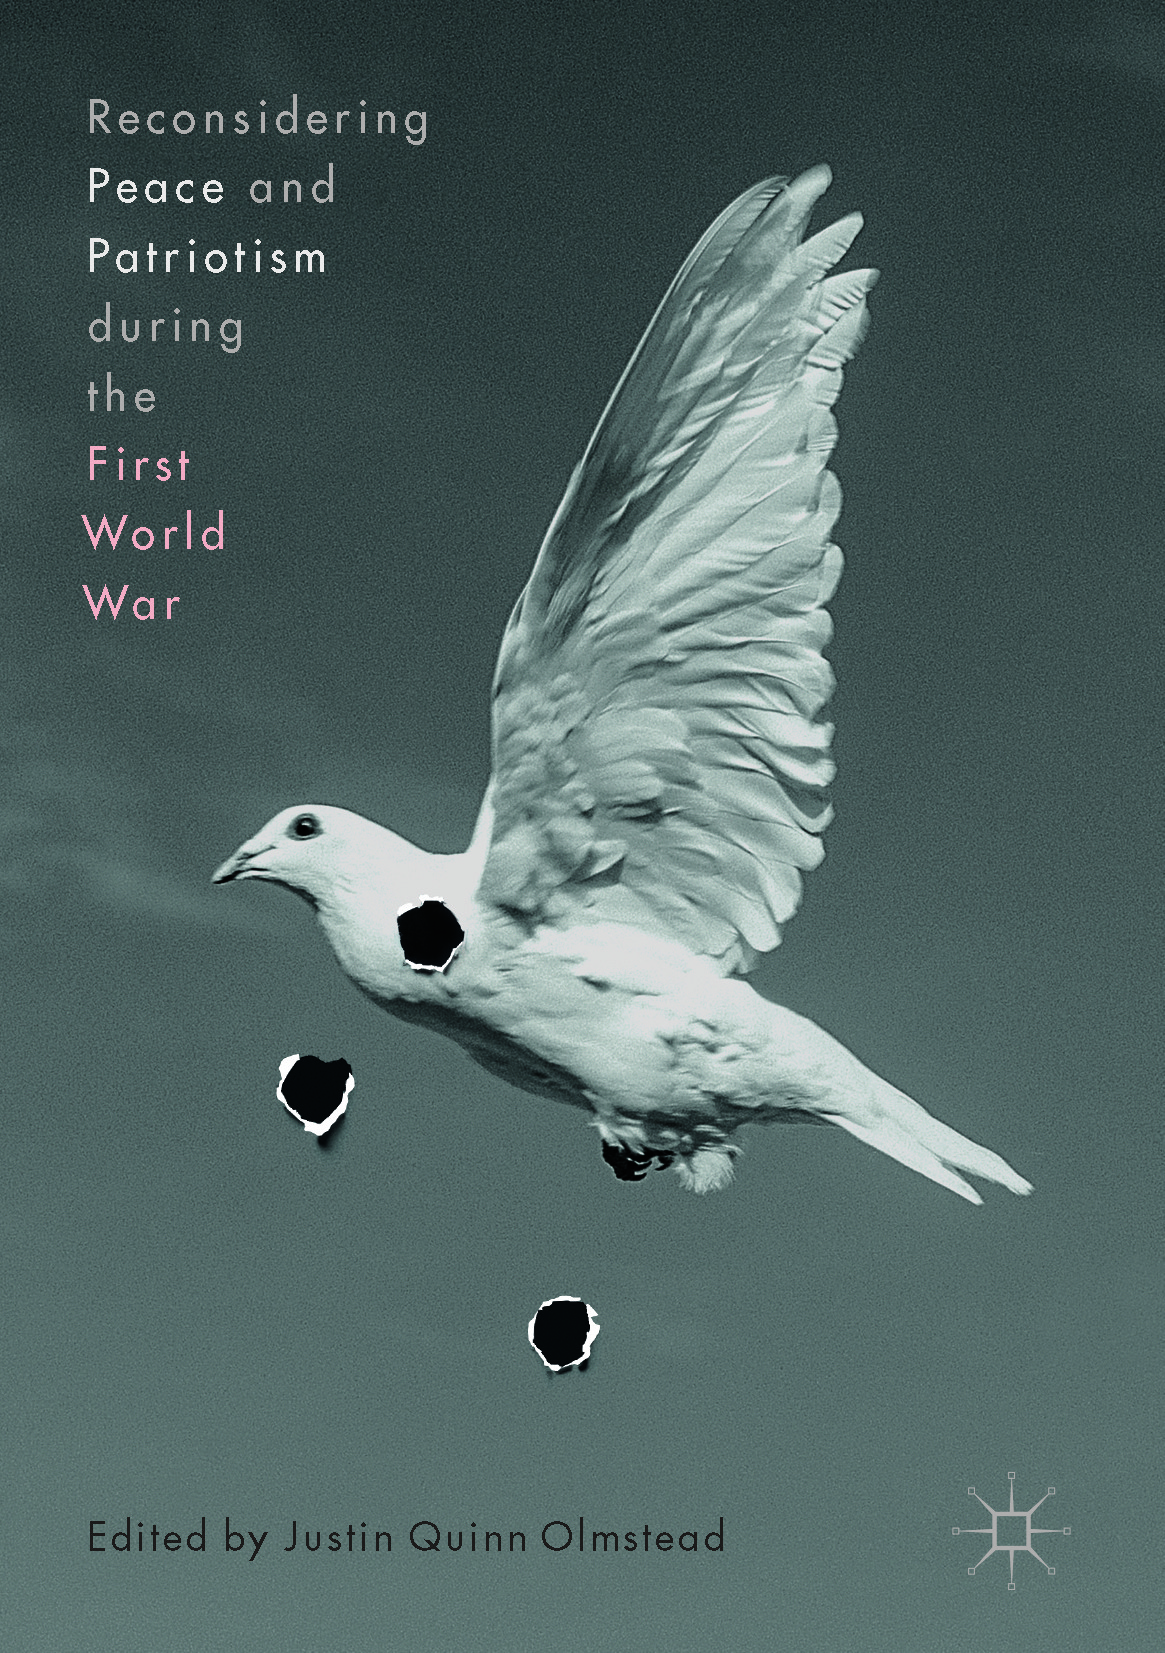 Olmstead, Justin Quinn - Reconsidering Peace and Patriotism during the First World War, ebook